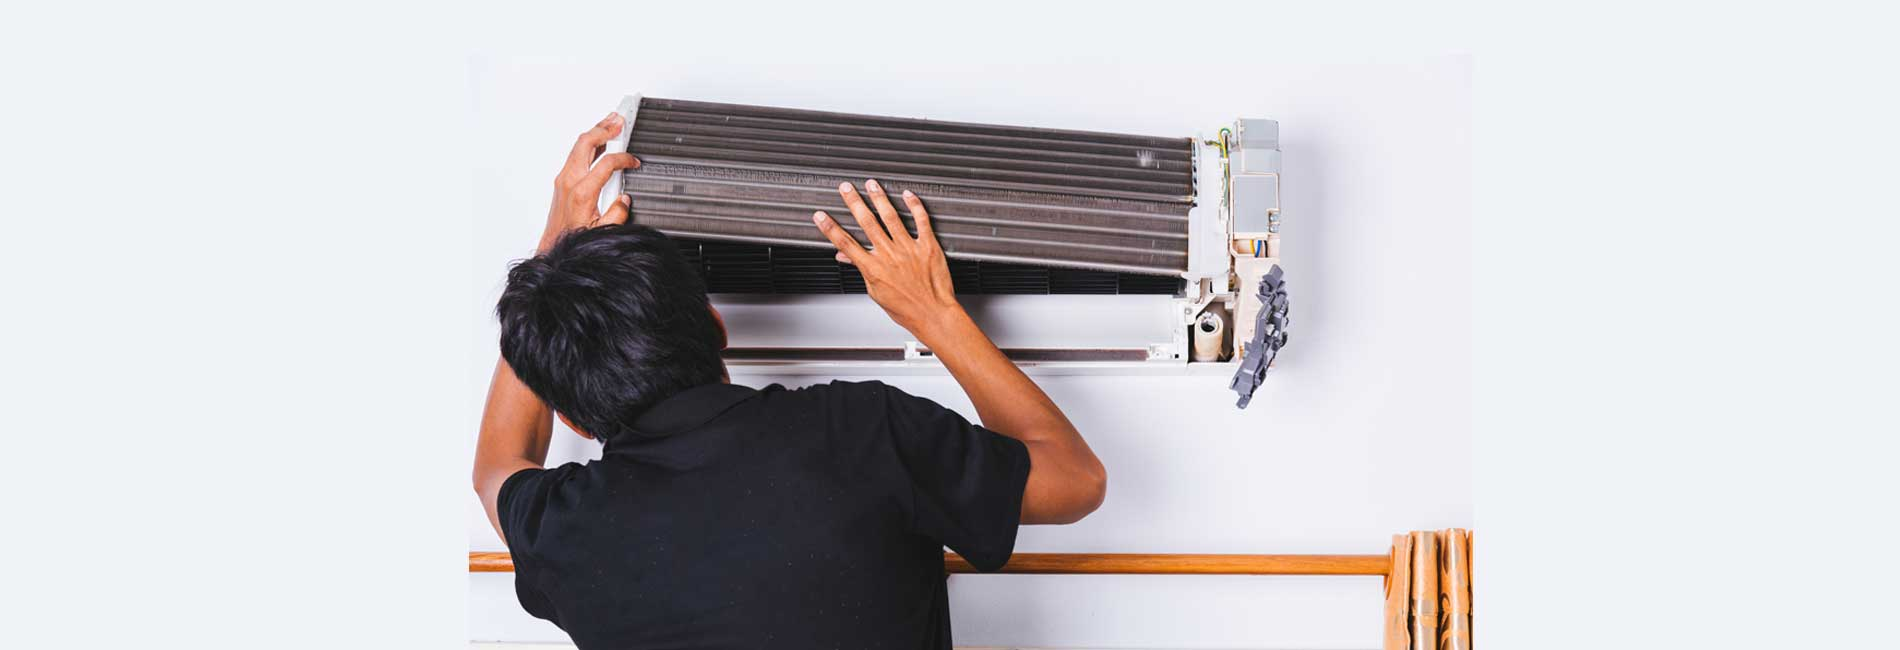 Bluestar Split AC Uninstallation in Egmore